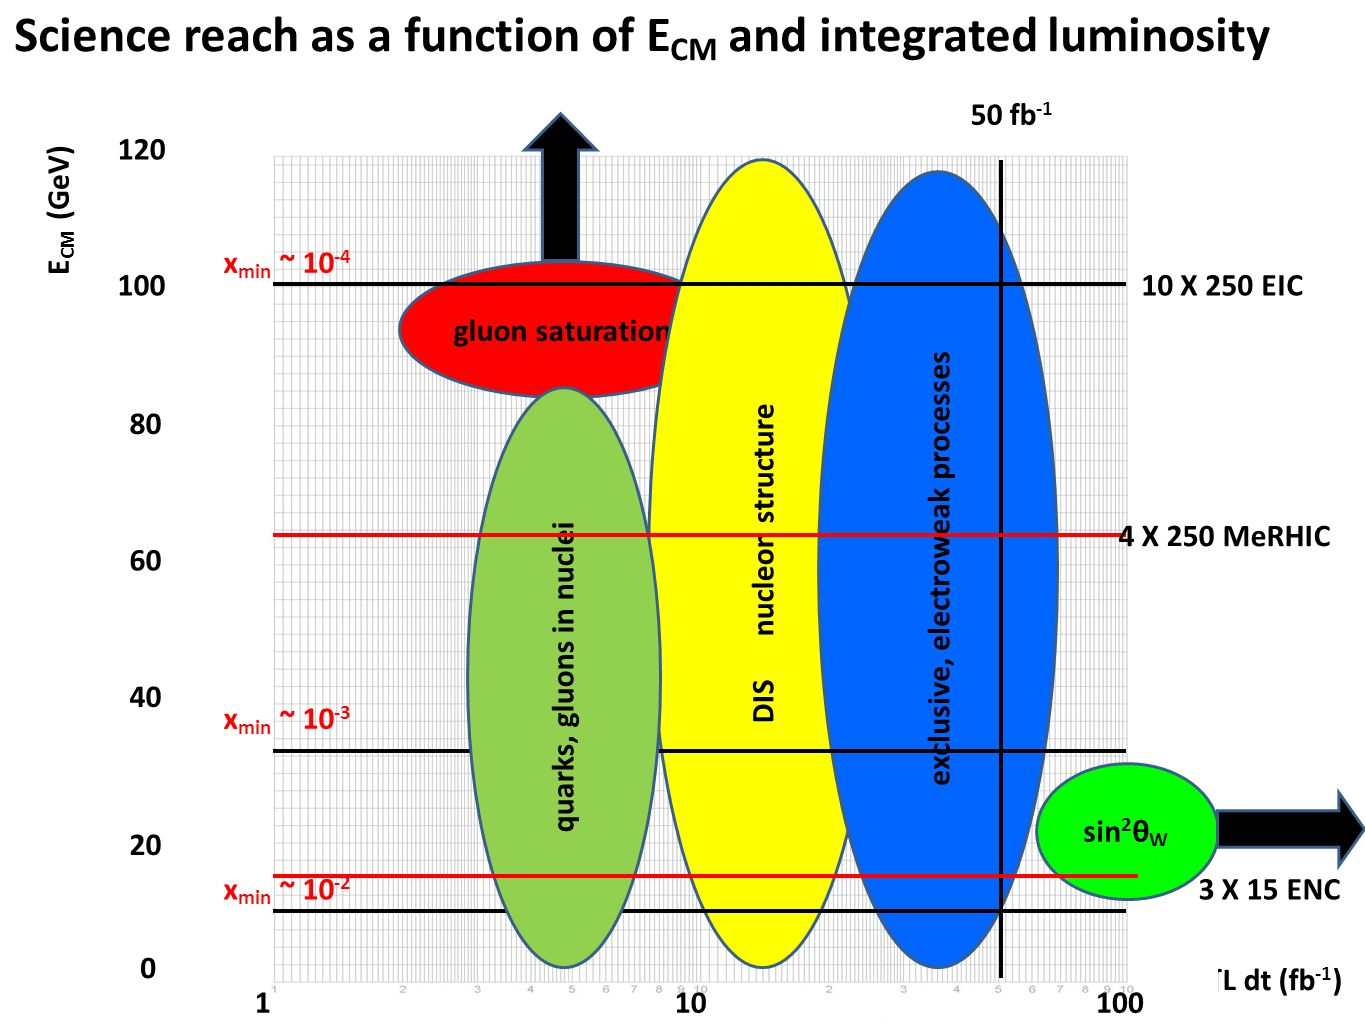 L dt (fb -1 ) E CM (GeV) 0 20 40 60 80 Science reach as a function of E CM and integrated luminosity 100 120 110100 gluon saturation sin 2 θ W DIS nucleon structure exclusive, electroweak processes x min ~ 10 -2 x min ~ 10 -3 x min ~ 10 -4 50 fb -1 quarks, gluons in nuclei 4 X 250 MeRHIC 10 X 250 EIC 3 X 15 ENC